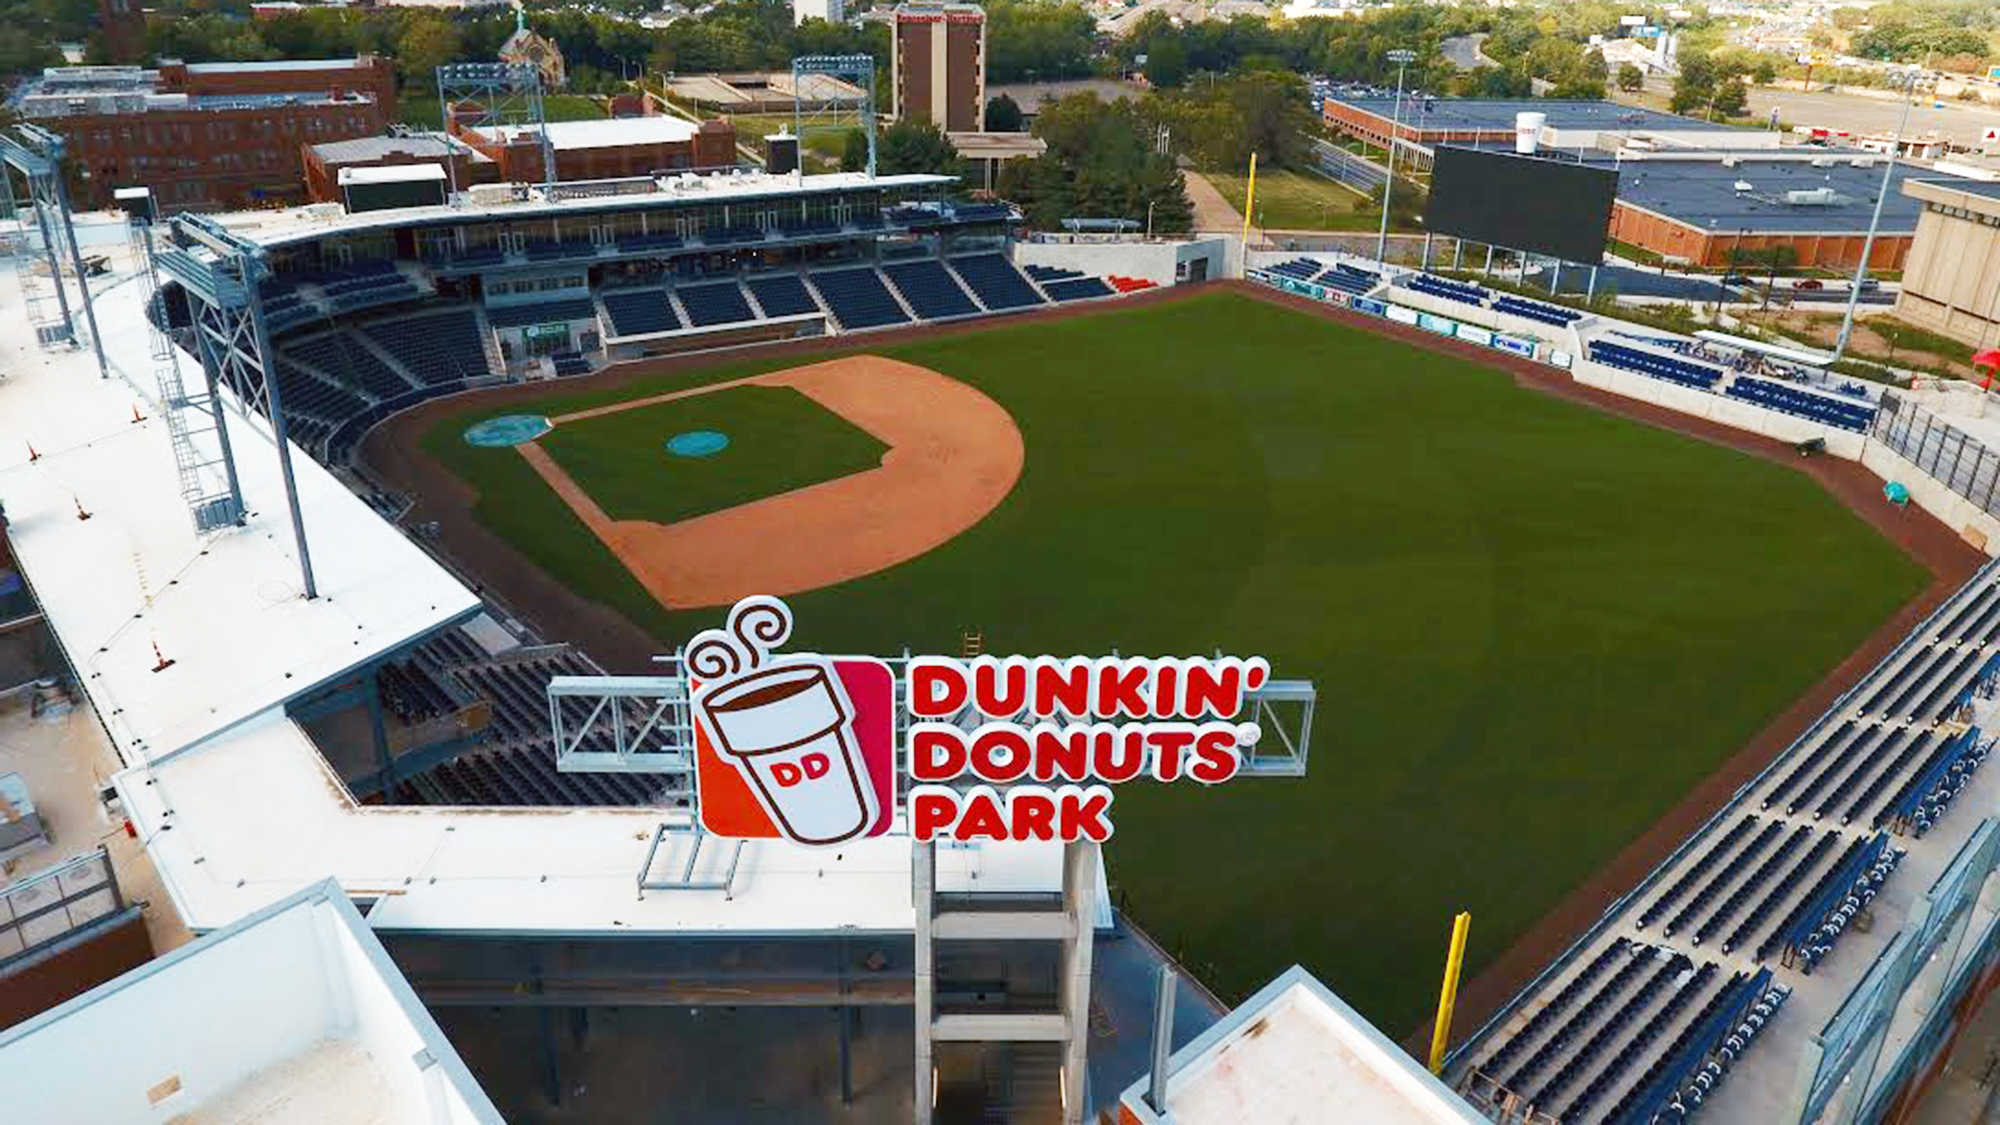 Dunkin' Donuts Park is home to the Hartford Yard Goats (AA Affiliate of the Colorado Rockies). Photo credit:  Quinnipiac University .